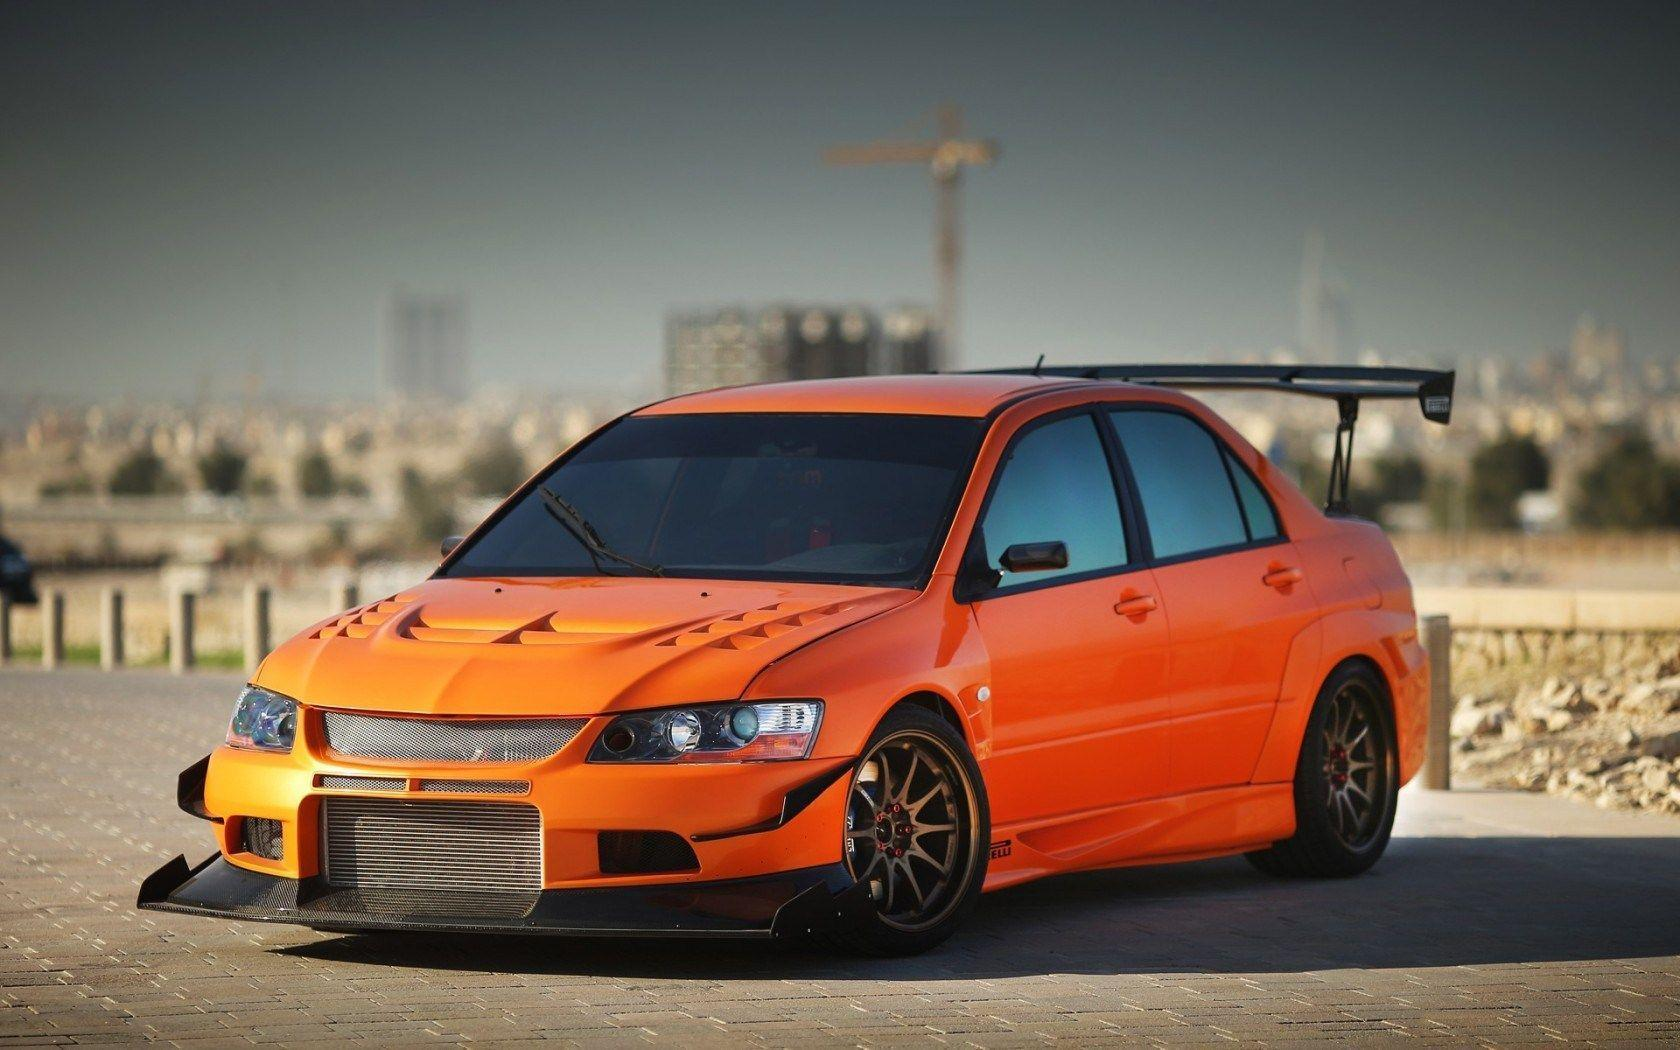 Orange Mitsubishi Lancer Evolution IX Pavement HD Wallpapers